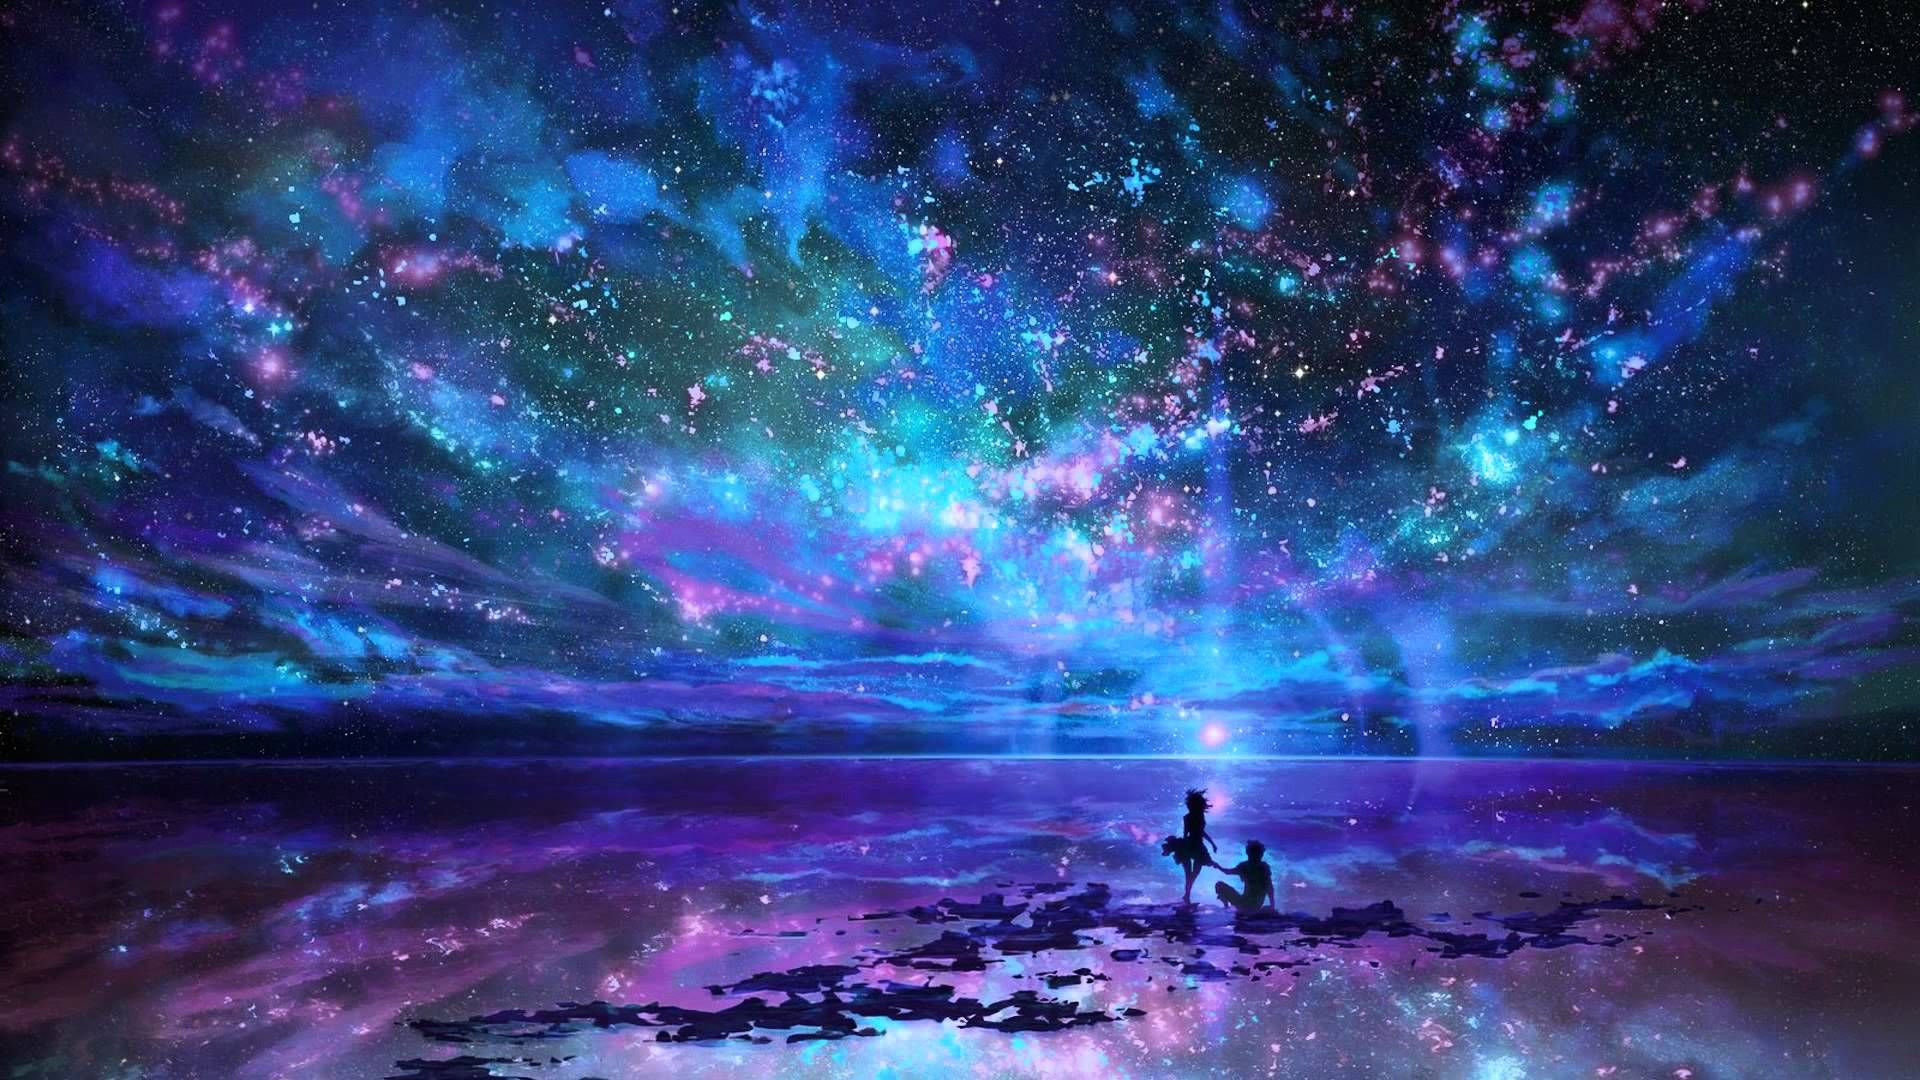 Digital art space sky scenery hd wallpaper 1920x1080 for Space landscape